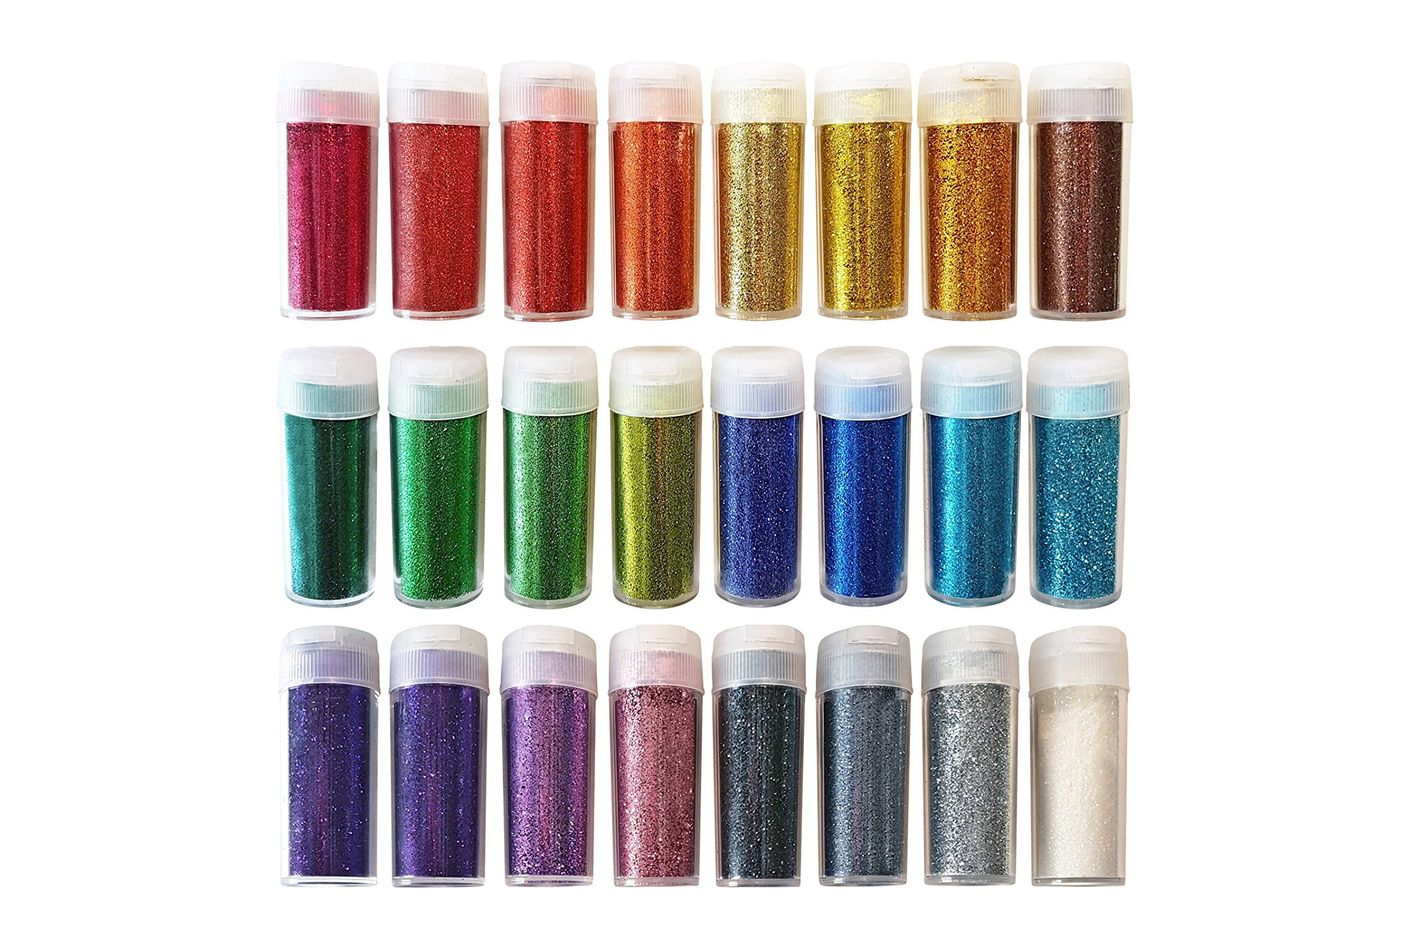 Glitter That Looks Almost Like Glitter, But Is Not Exactly Glitter  There Are Different Shapes And Stars Of Glitter It's Too Much Glitter To  Even Get